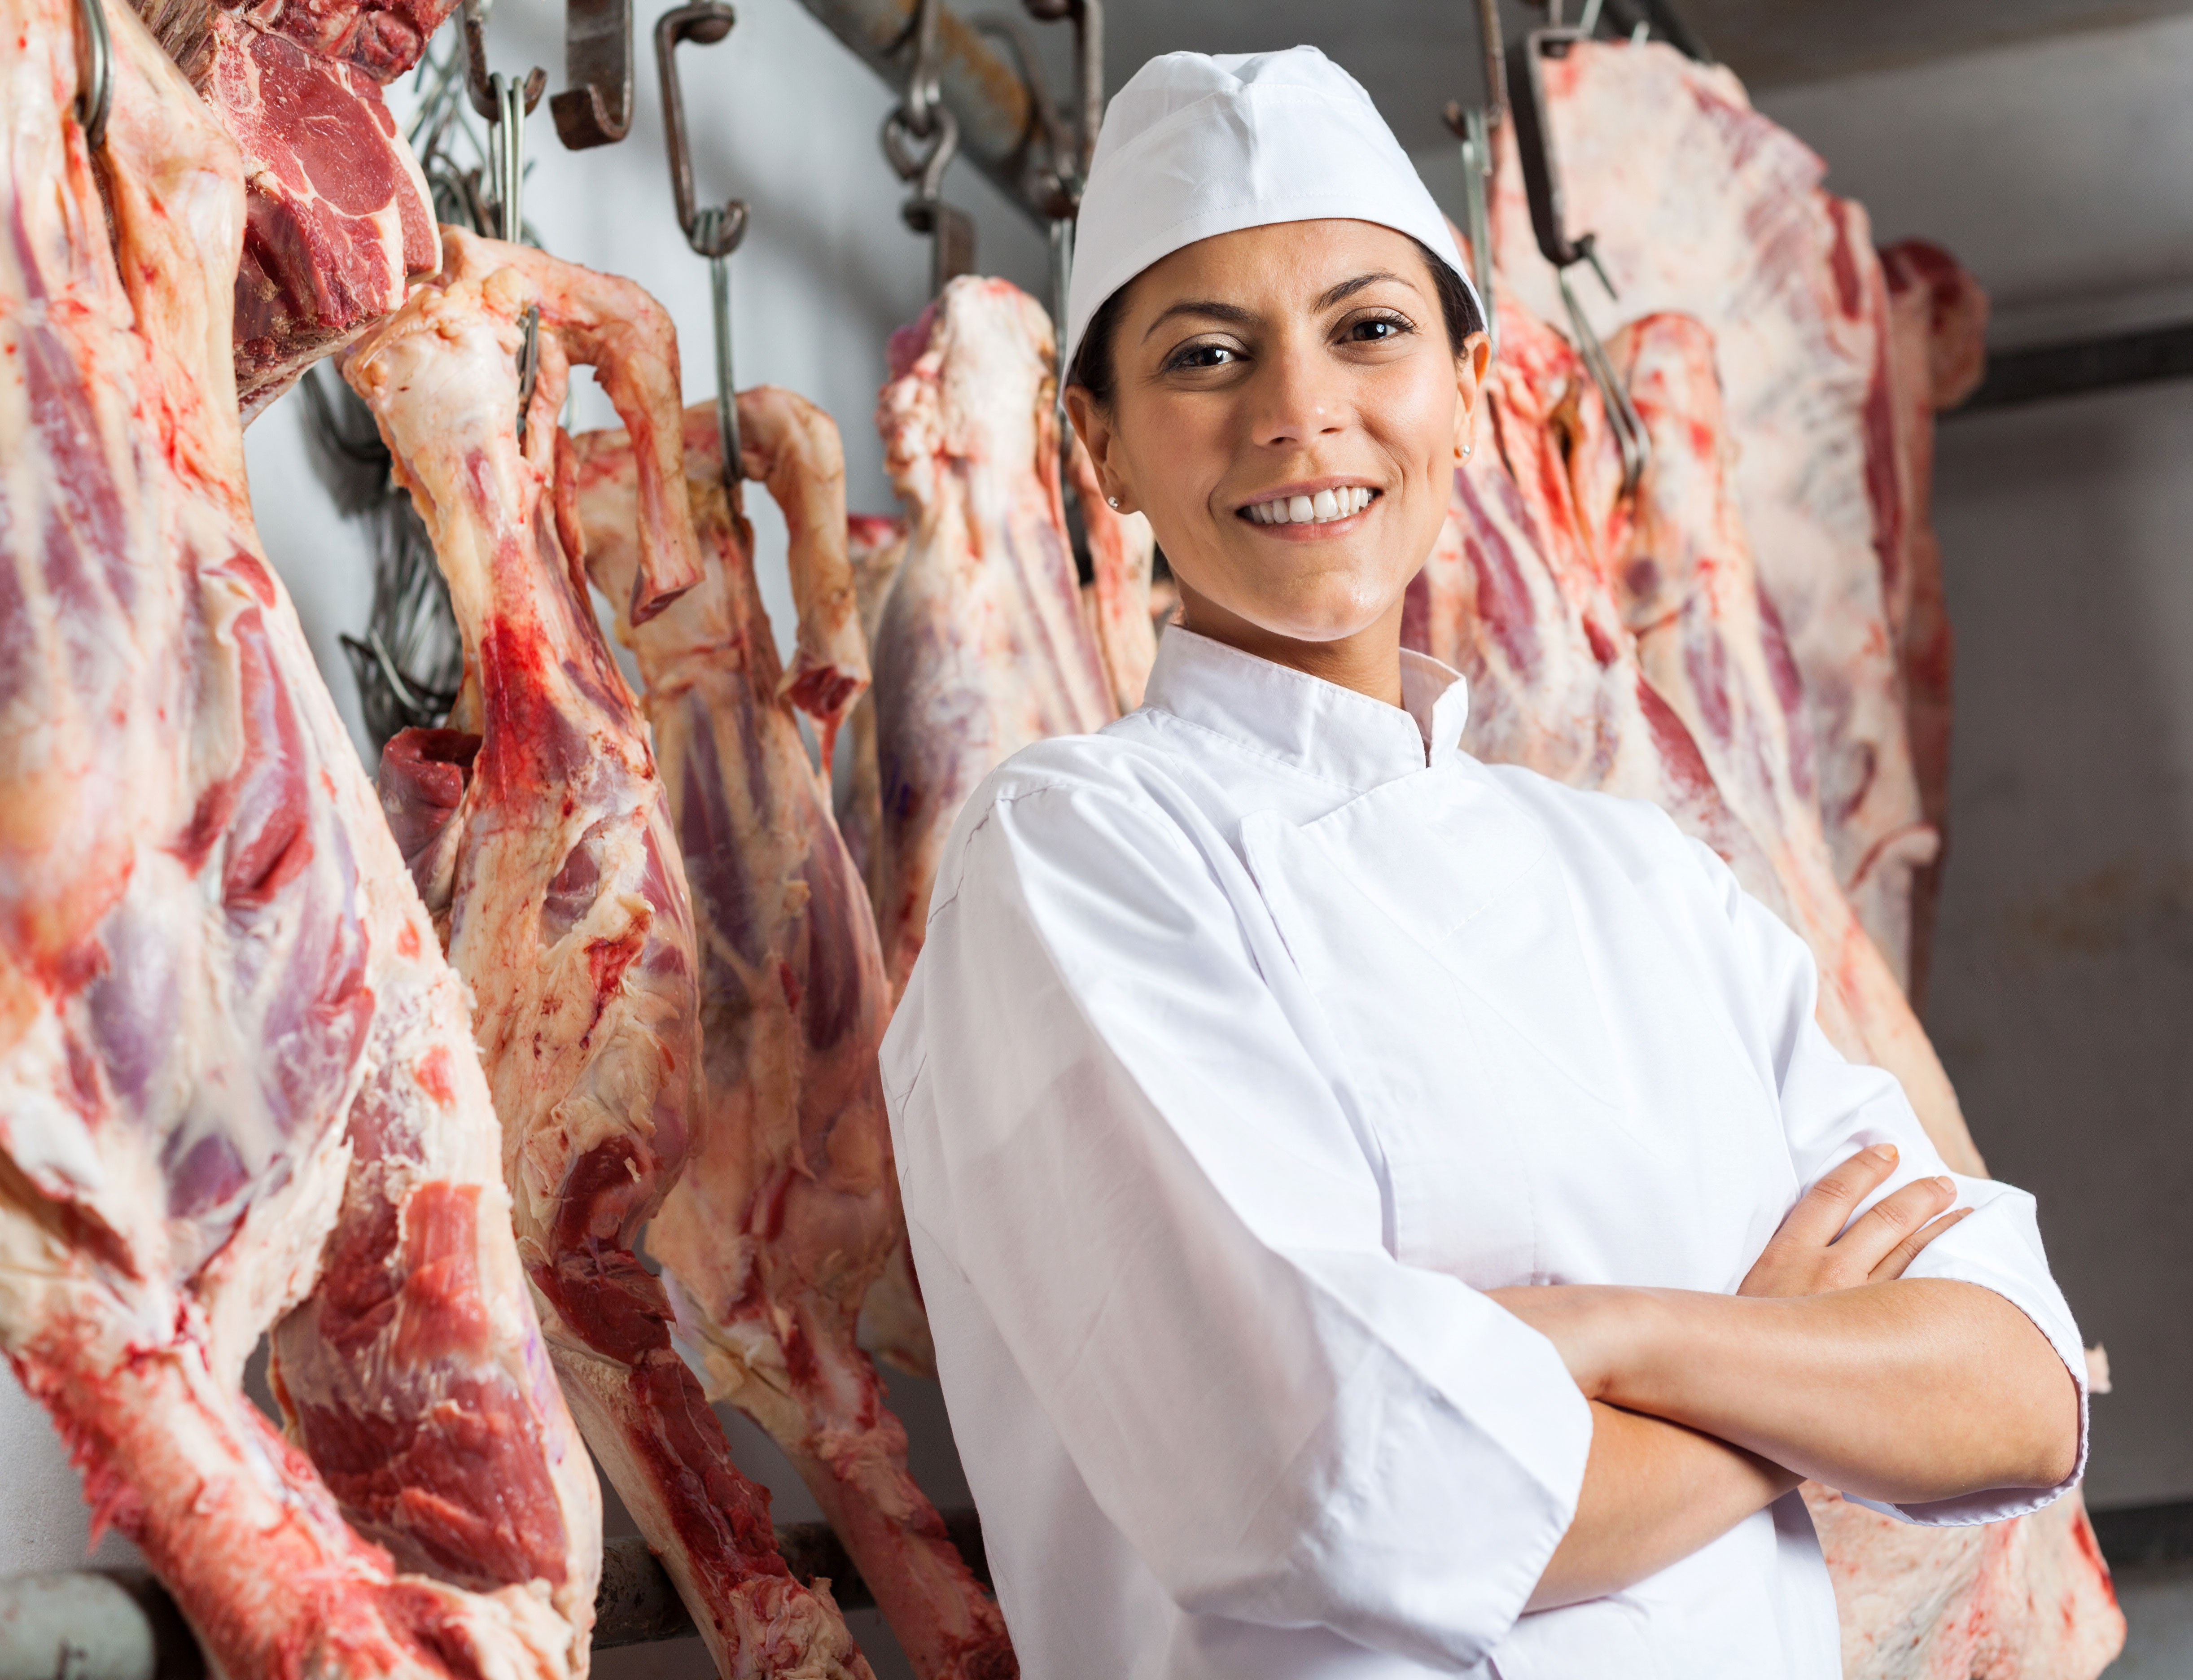 seller meat production